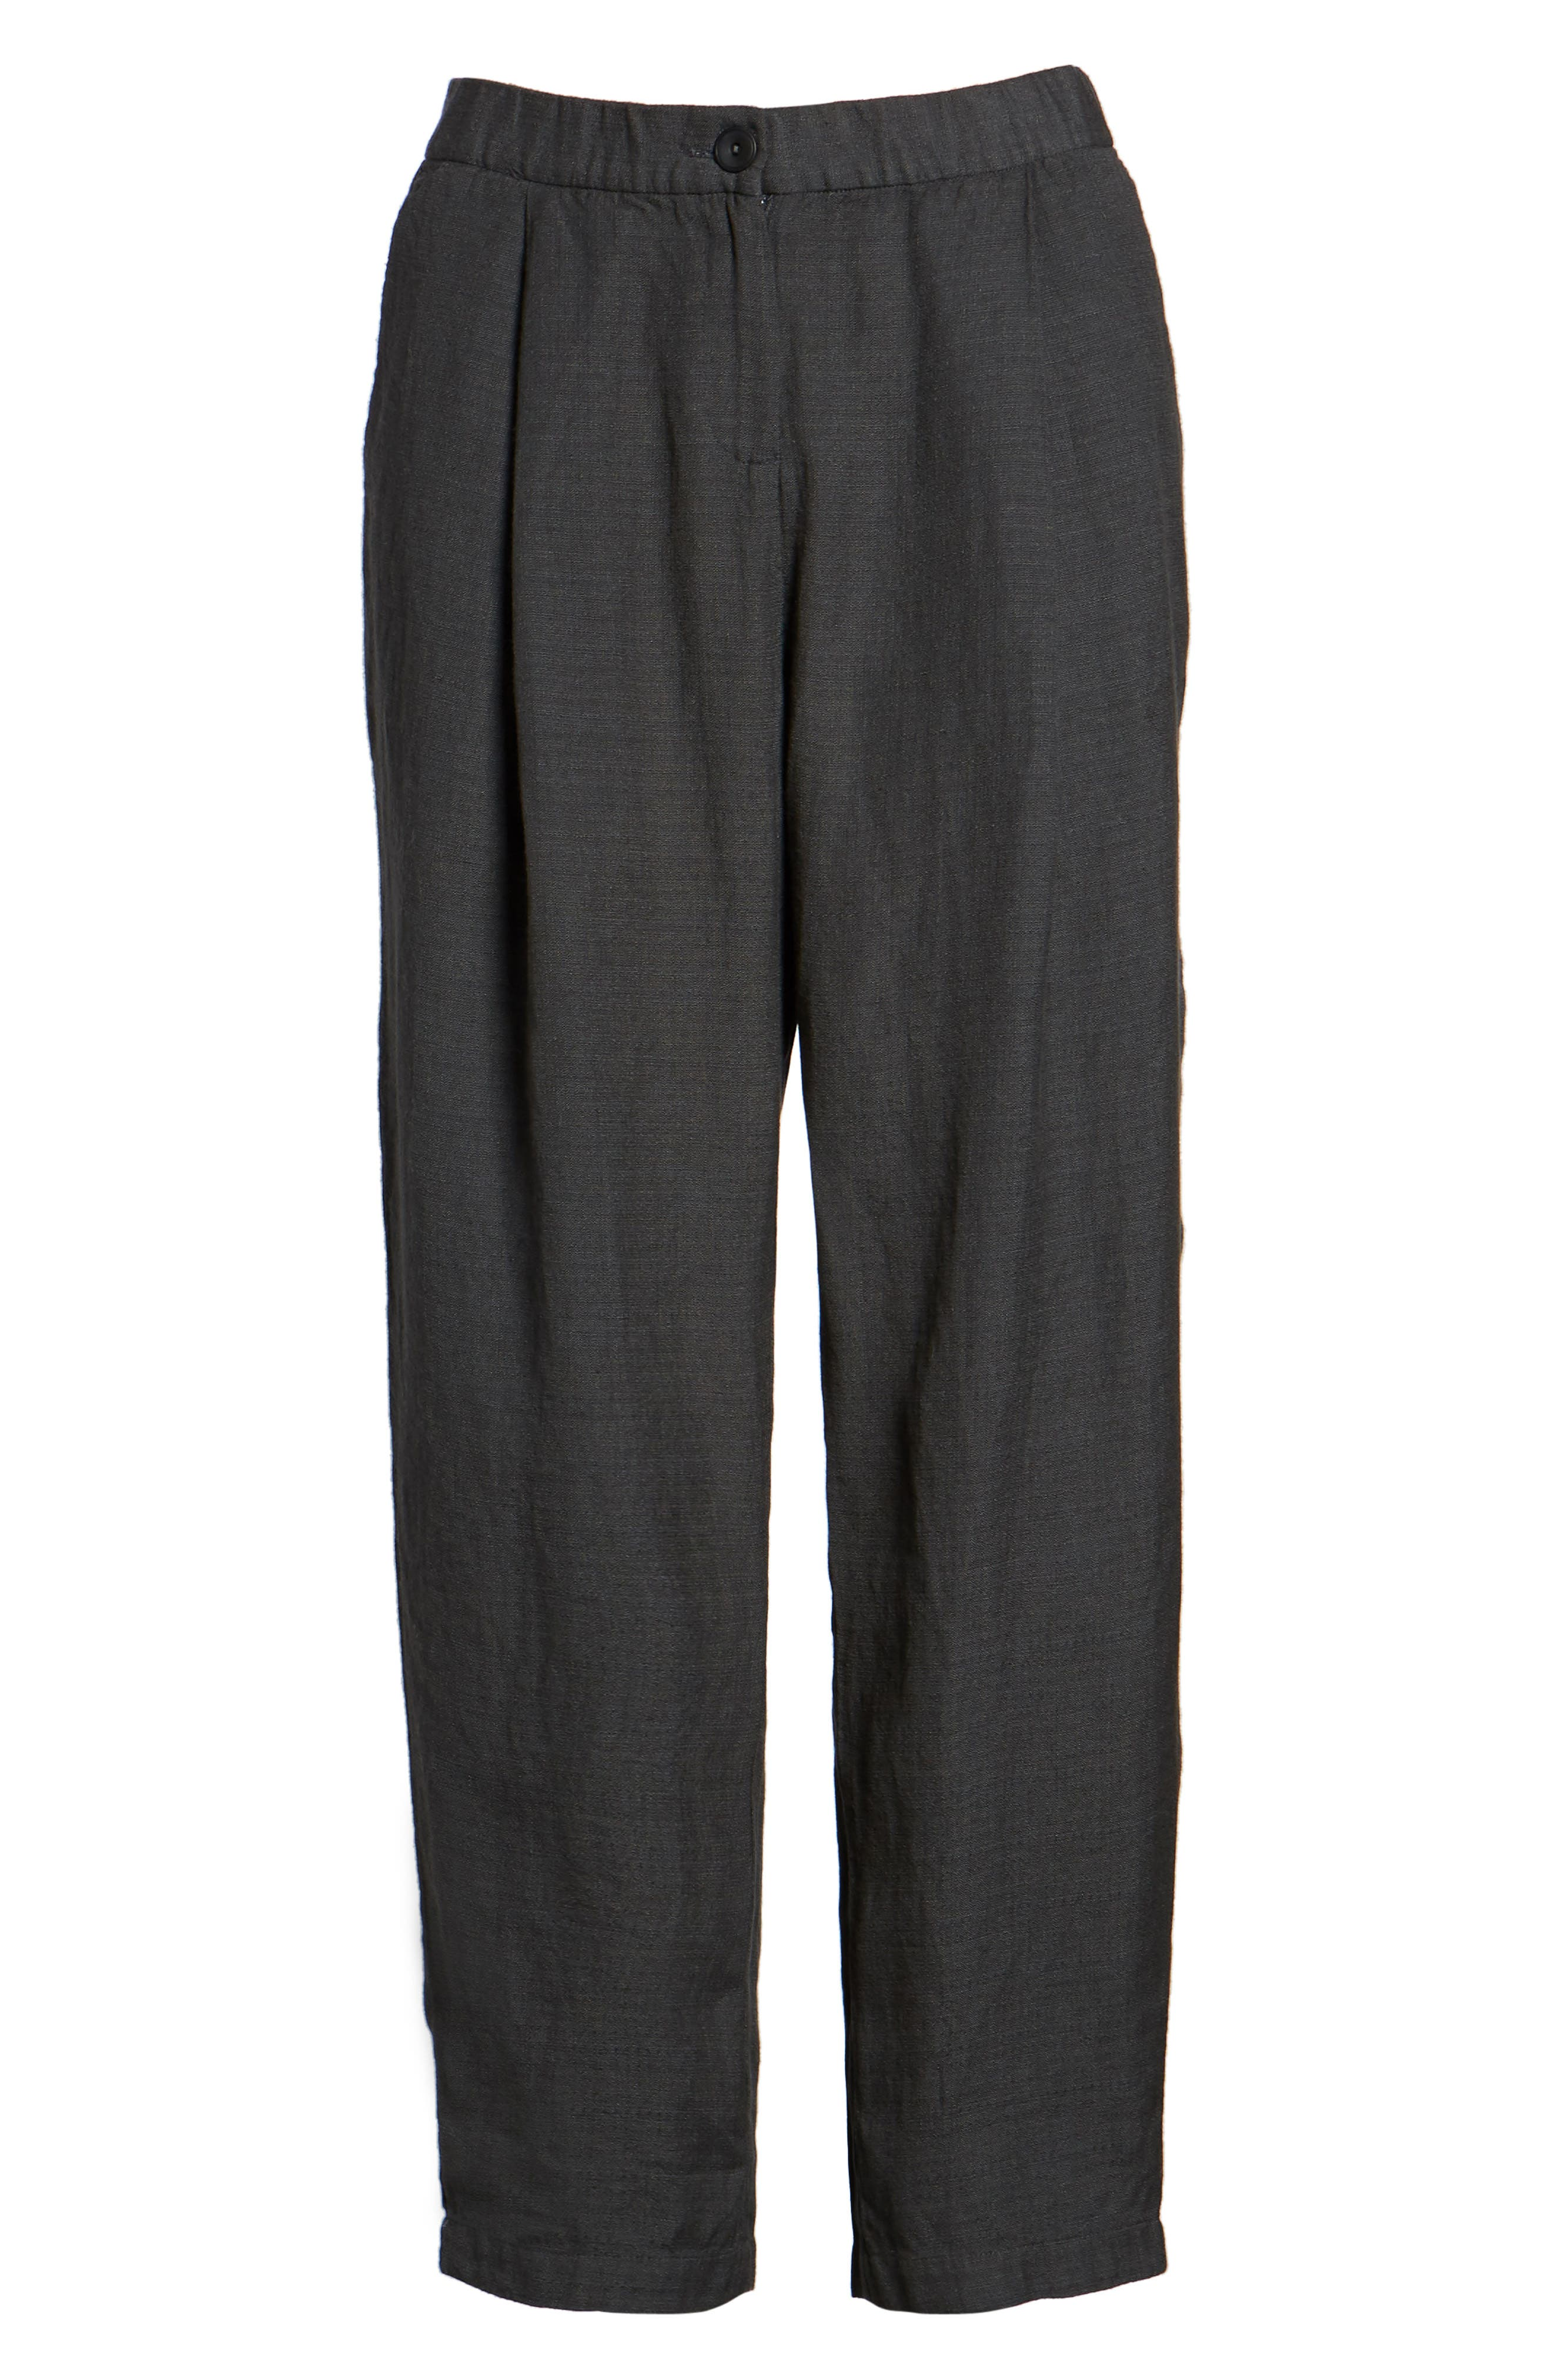 Pleated Linen Blend Ankle Trousers,                             Alternate thumbnail 7, color,                             025